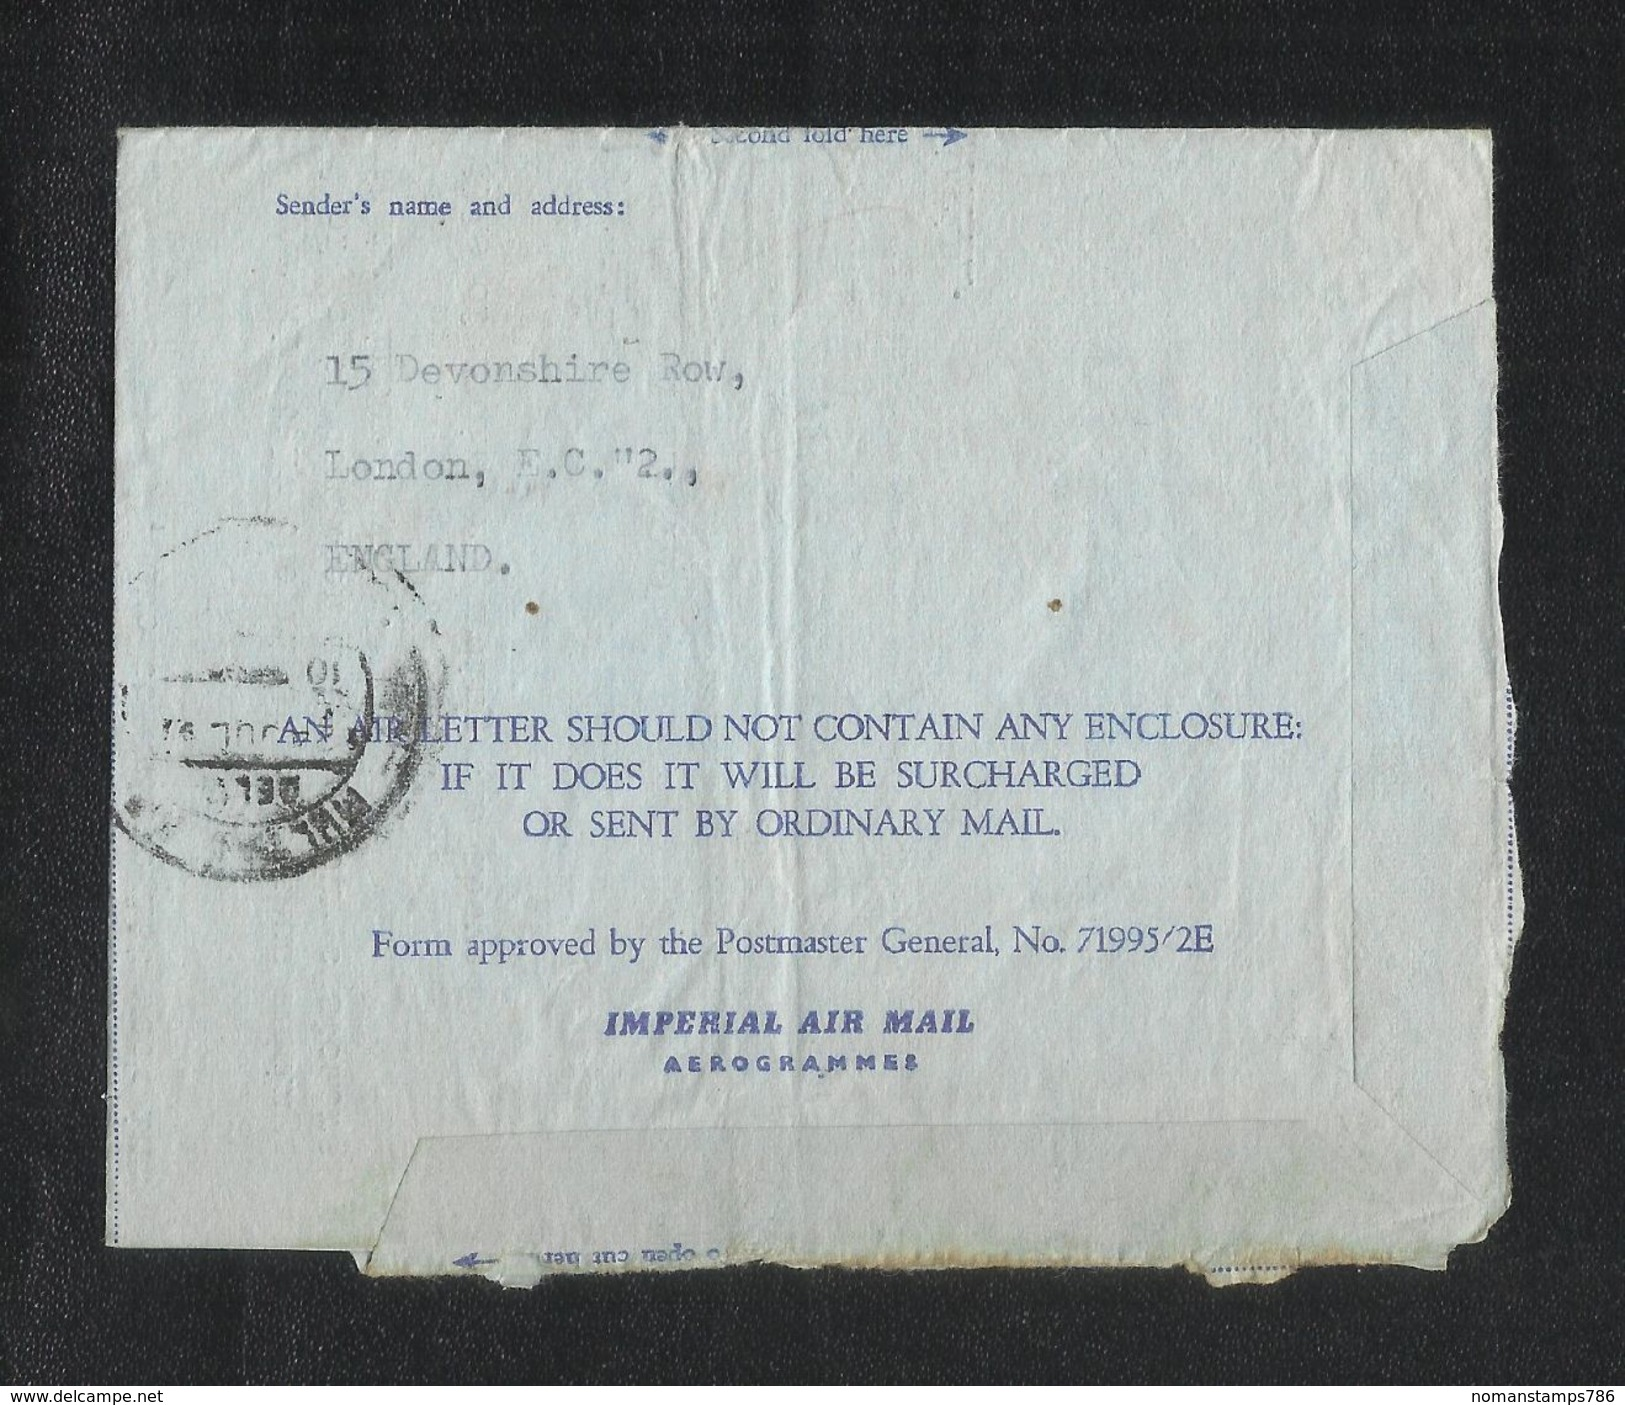 Great Britain England 1967 Slogan Postmark Air Mail Postal Used Air Letter Aerogramme Cover London To Pakistan - Stamped Stationery, Airletters & Aerogrammes